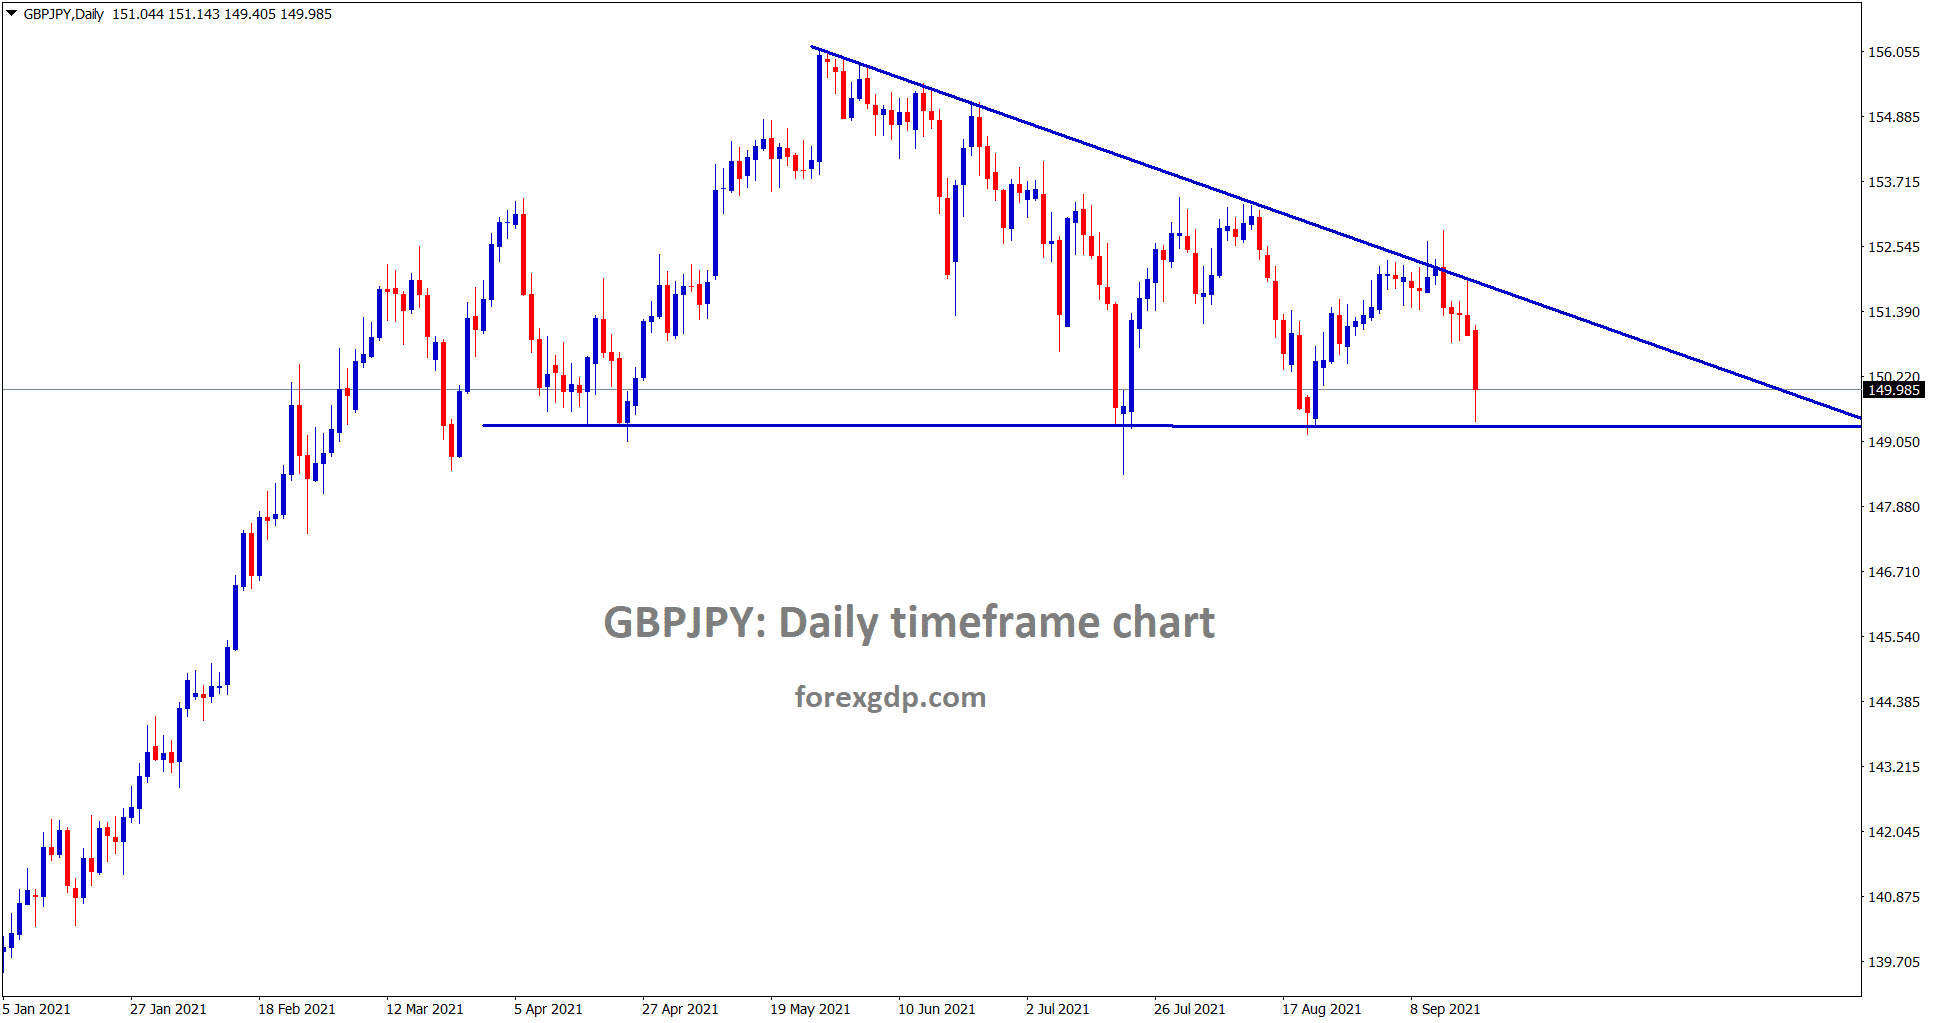 GBPJPY is going to break the descending triangle soon